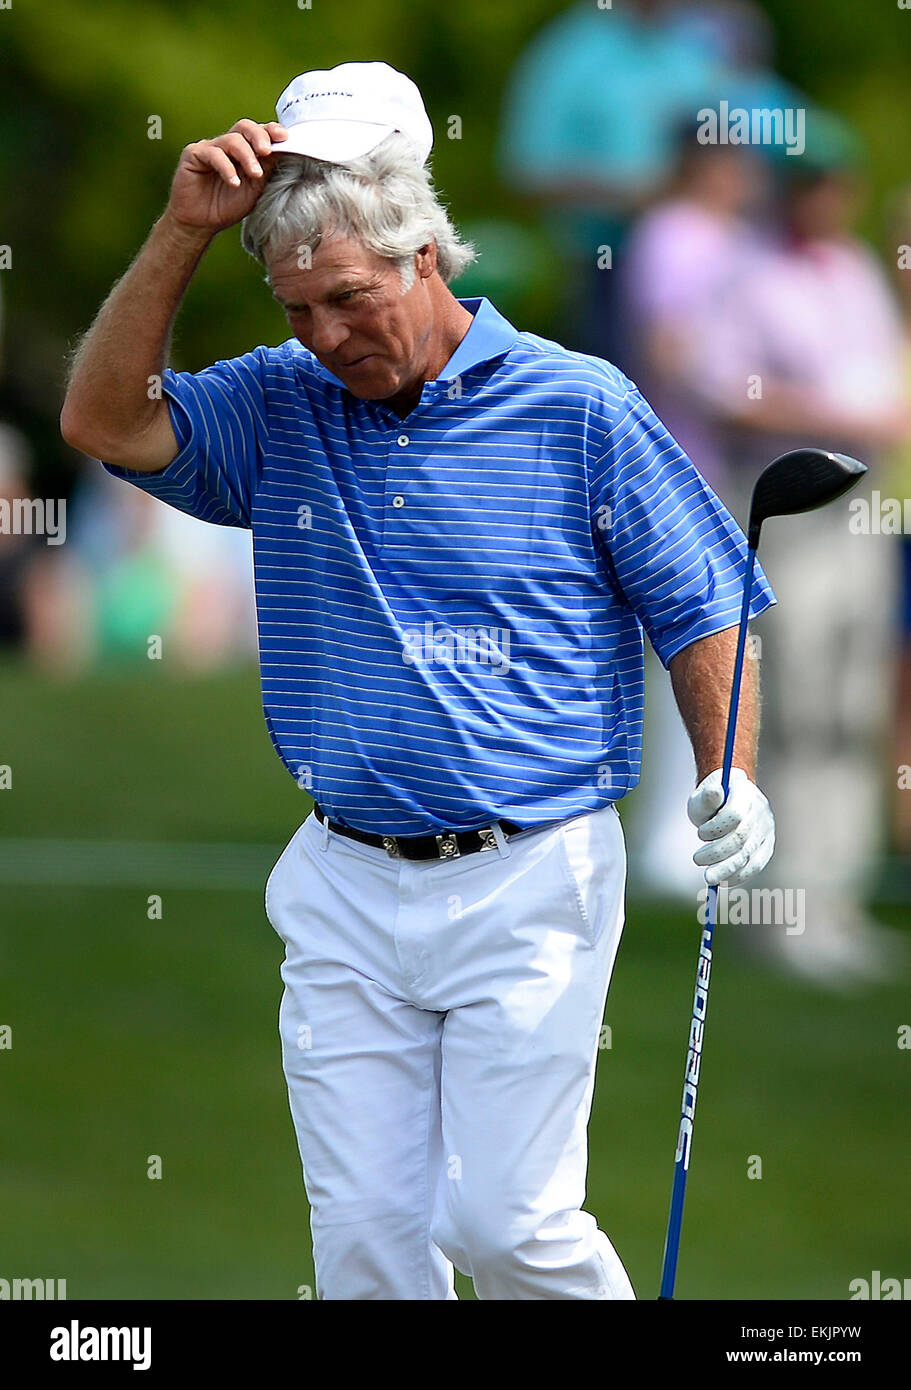 Augusta, Georgia, USA. 10th Apr, 2015. Ben Crenshaw tips his cap to fans along the eighth fairway during second - Stock Image